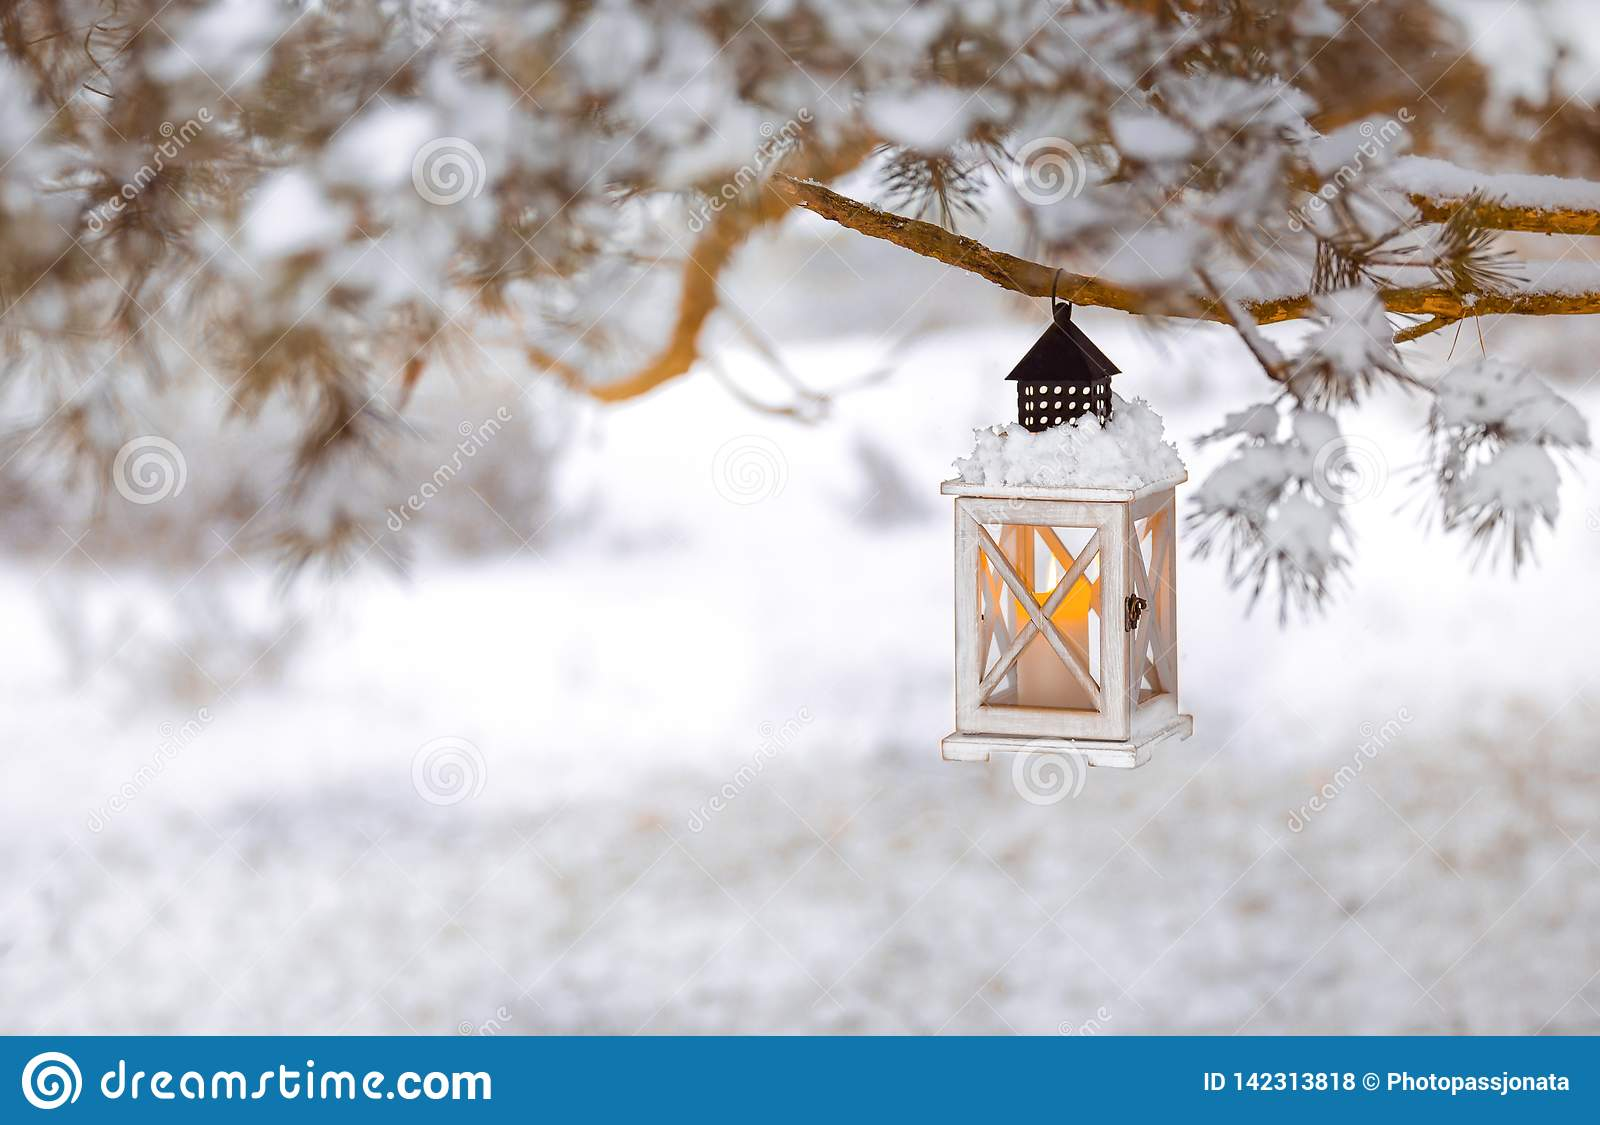 Lantern with candle on a snowy tree